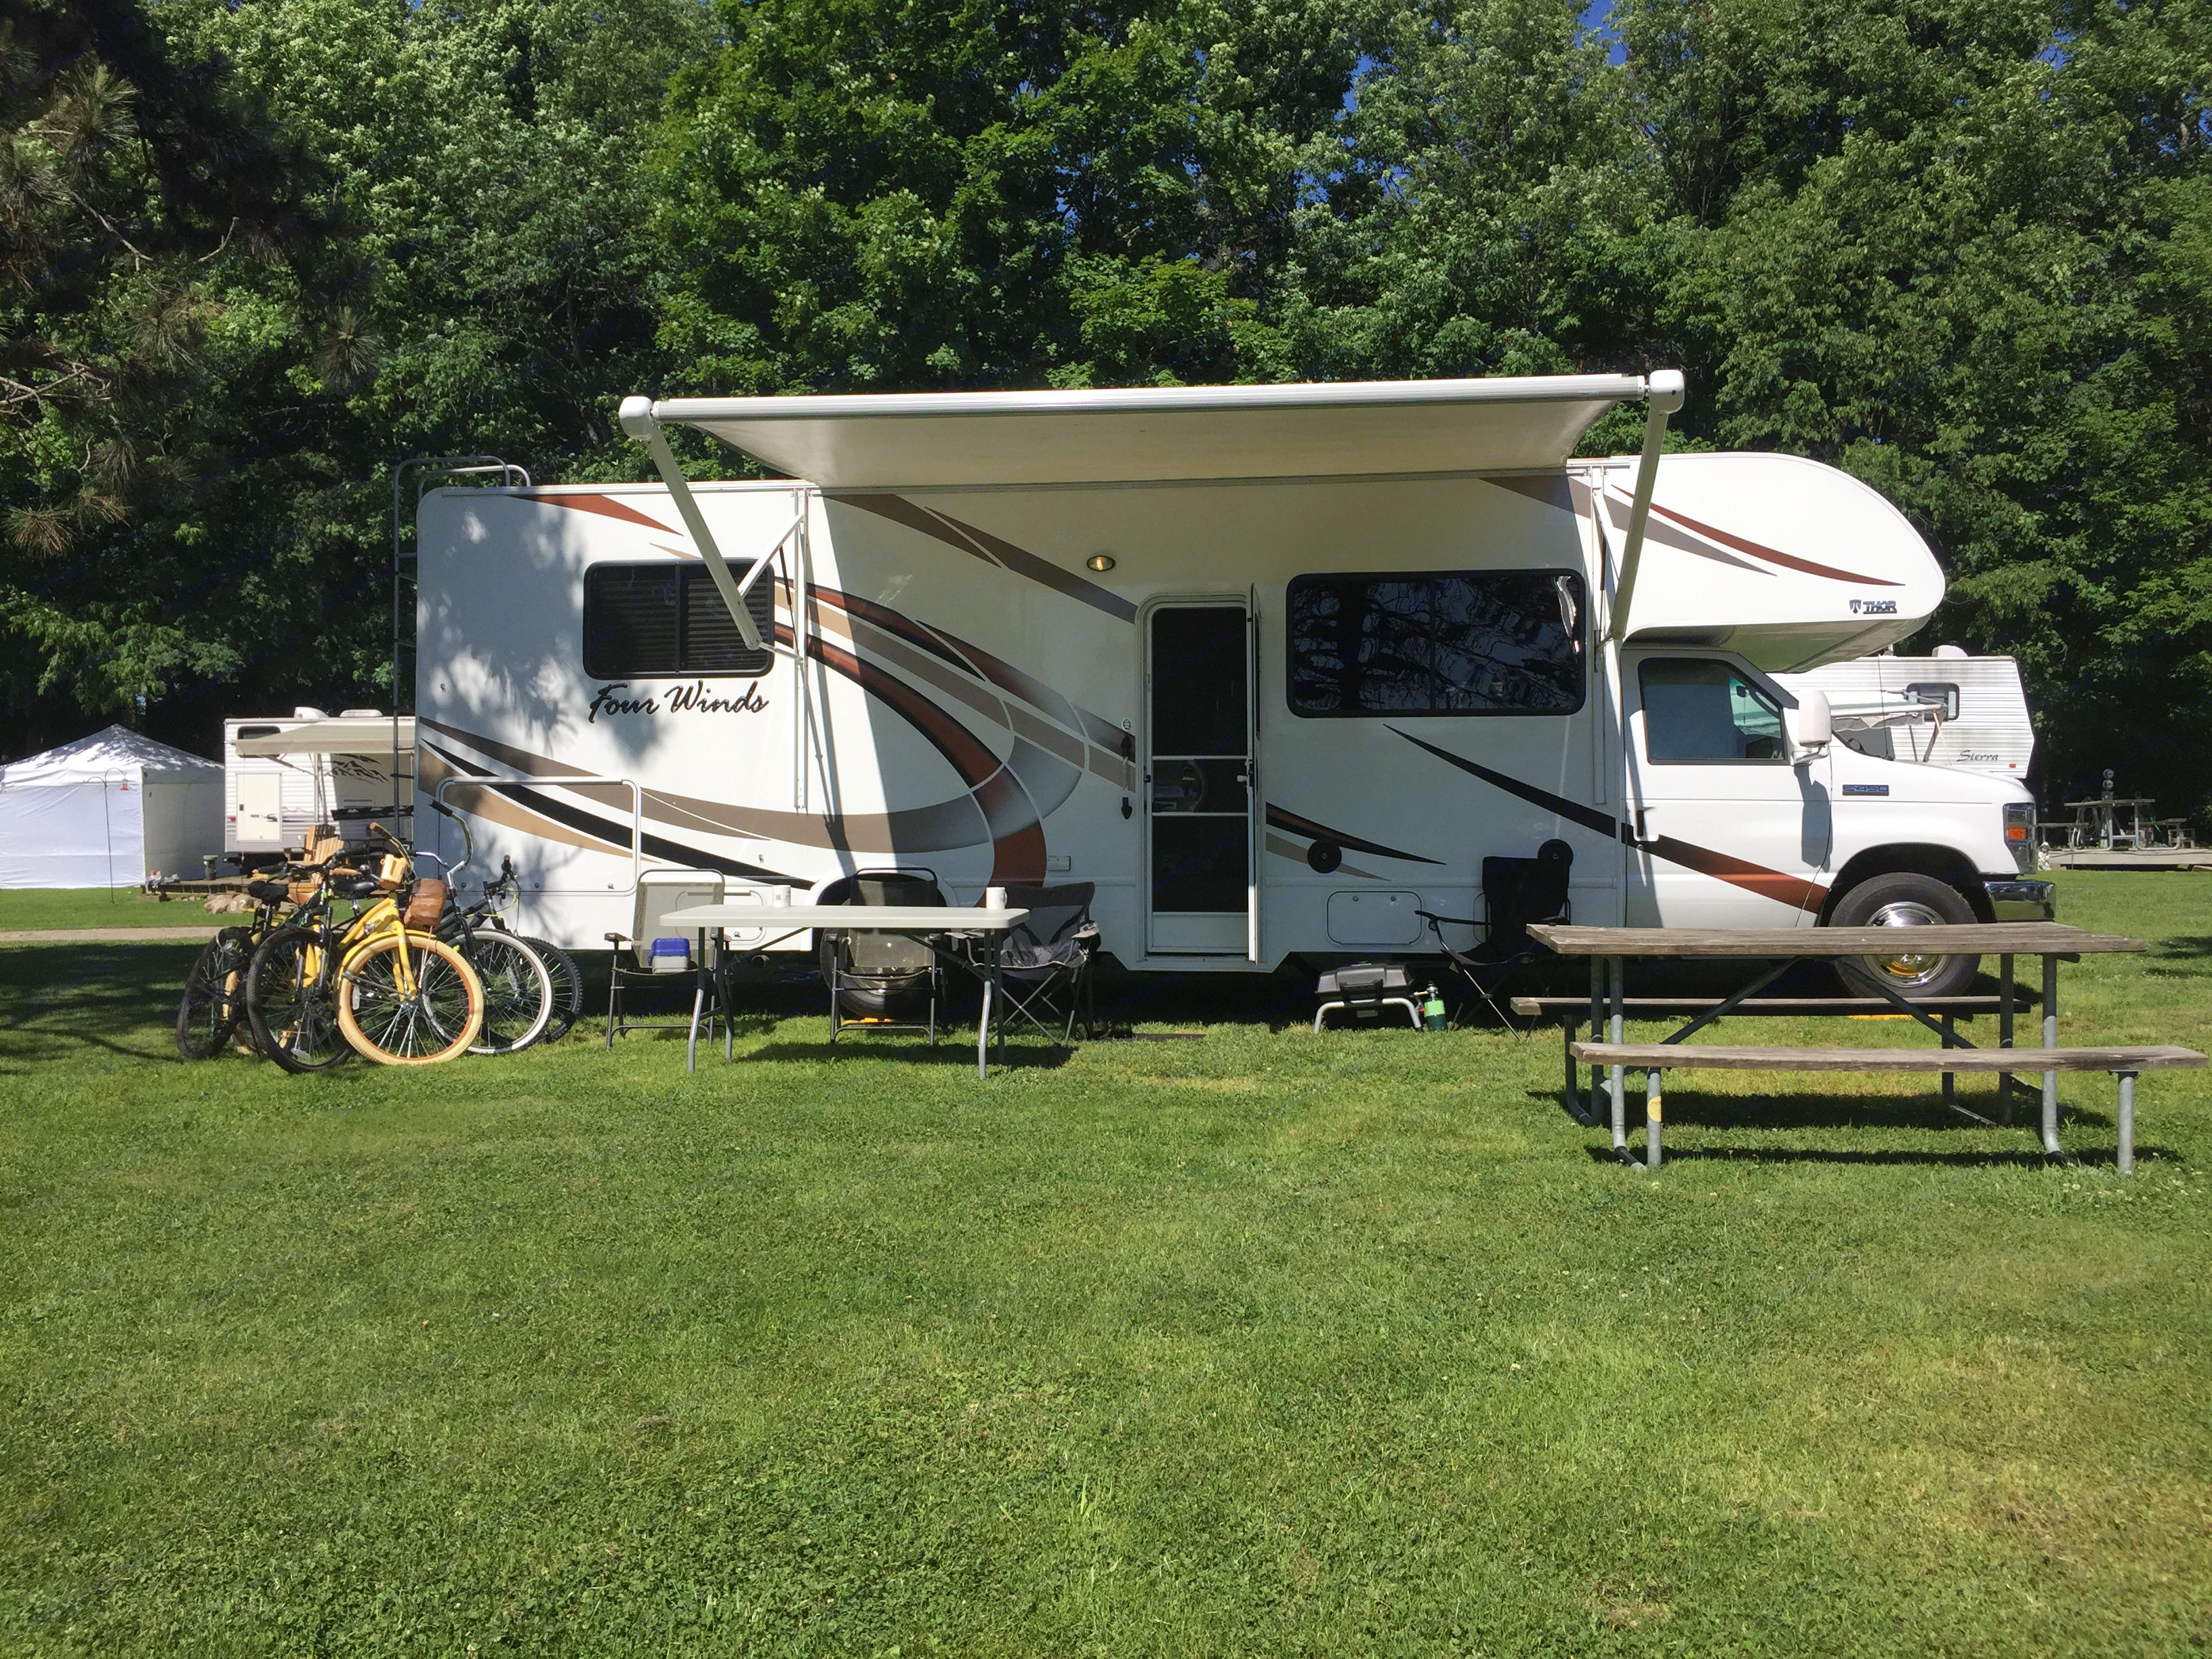 Local Camp Site. Thor Motor Coach Four Winds 2018